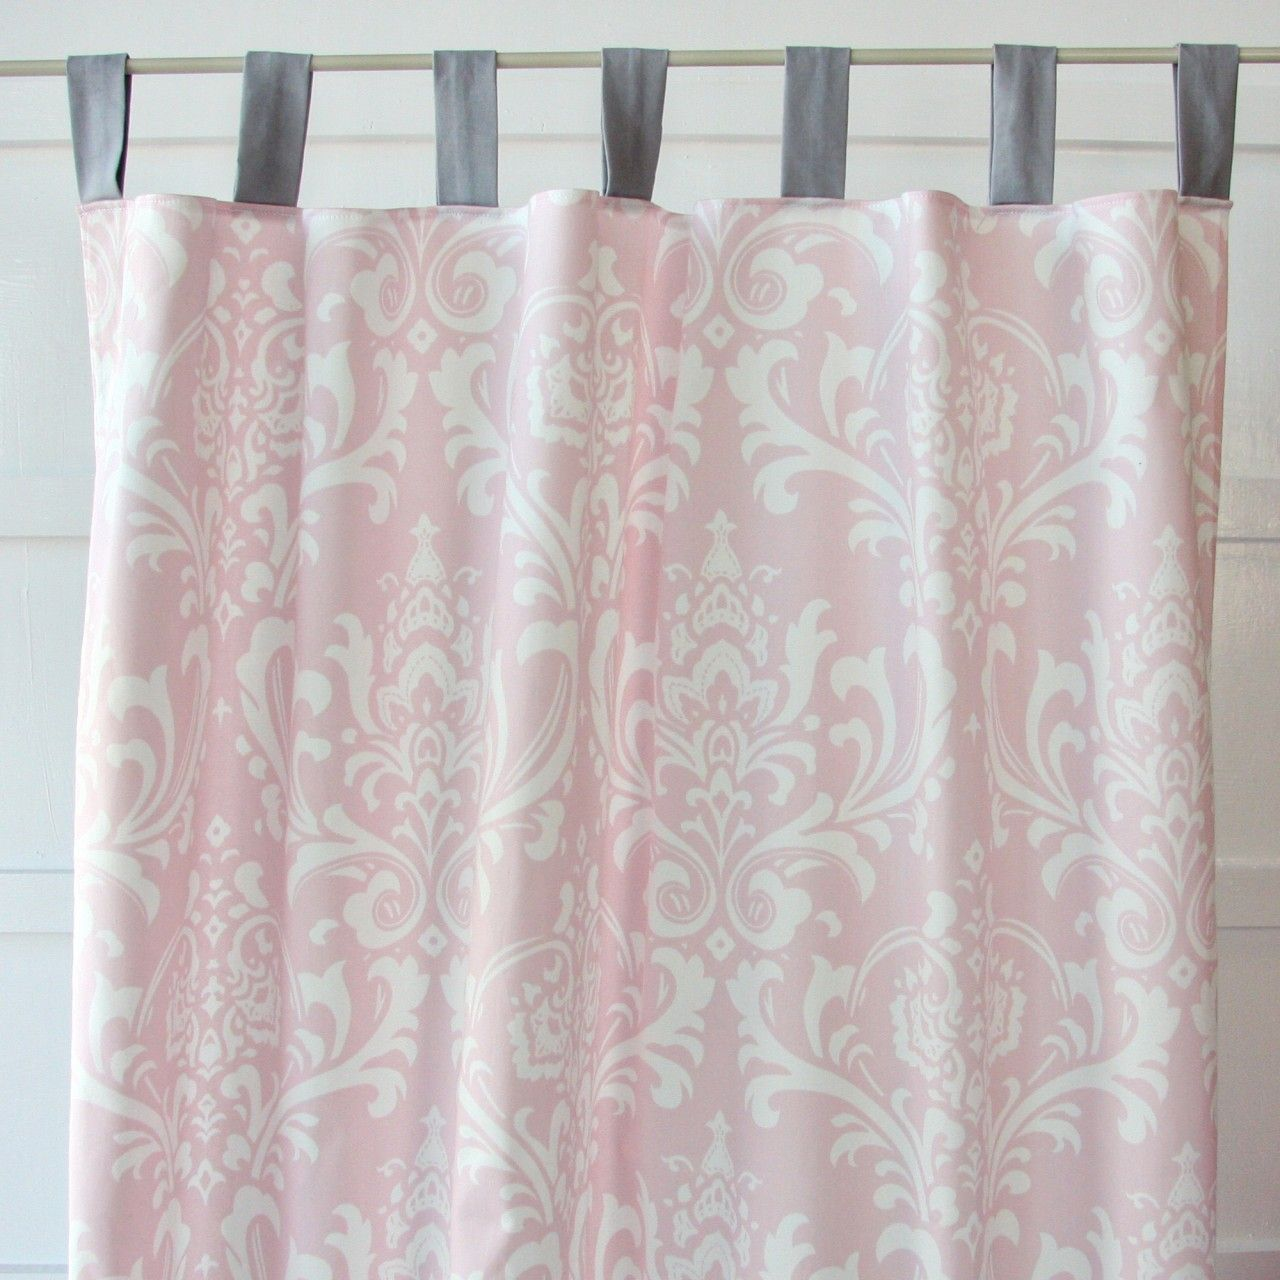 Sweet Lace Damask Pink And Gray Curtain Panels